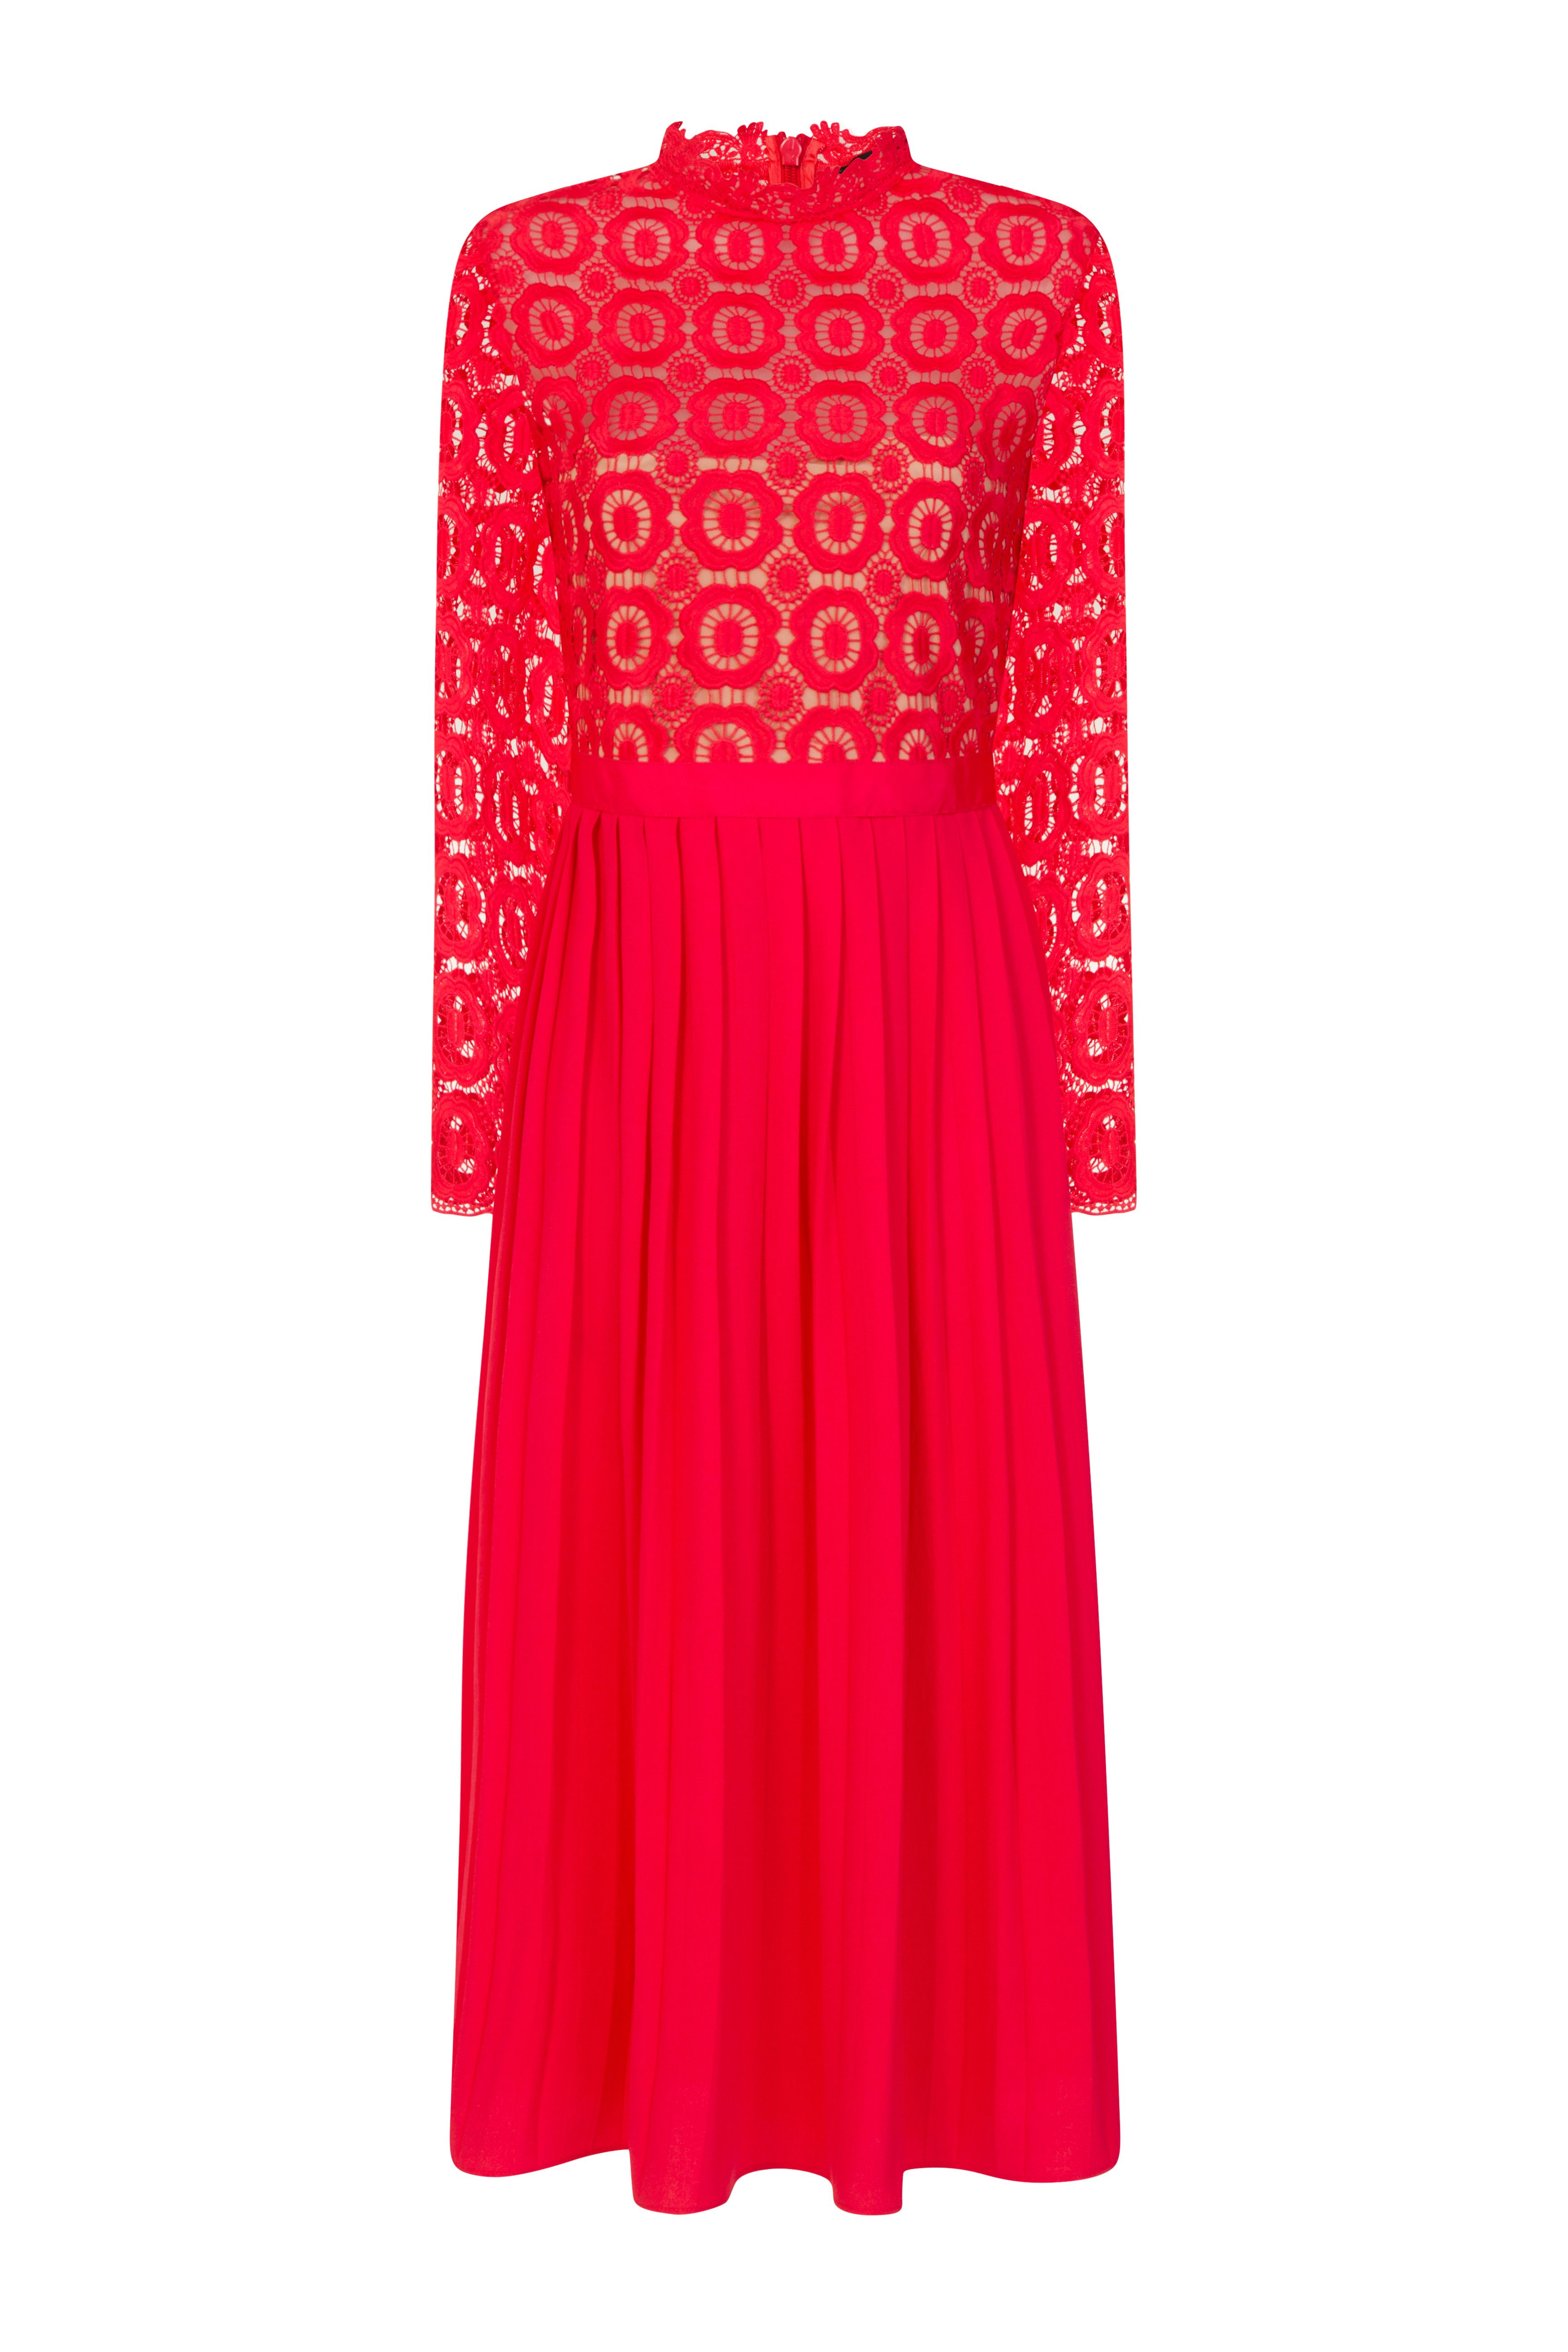 Red Crochet Lace Midi Dress With Pleated Skirt Dresses Midi Dress Lace Midi Dress